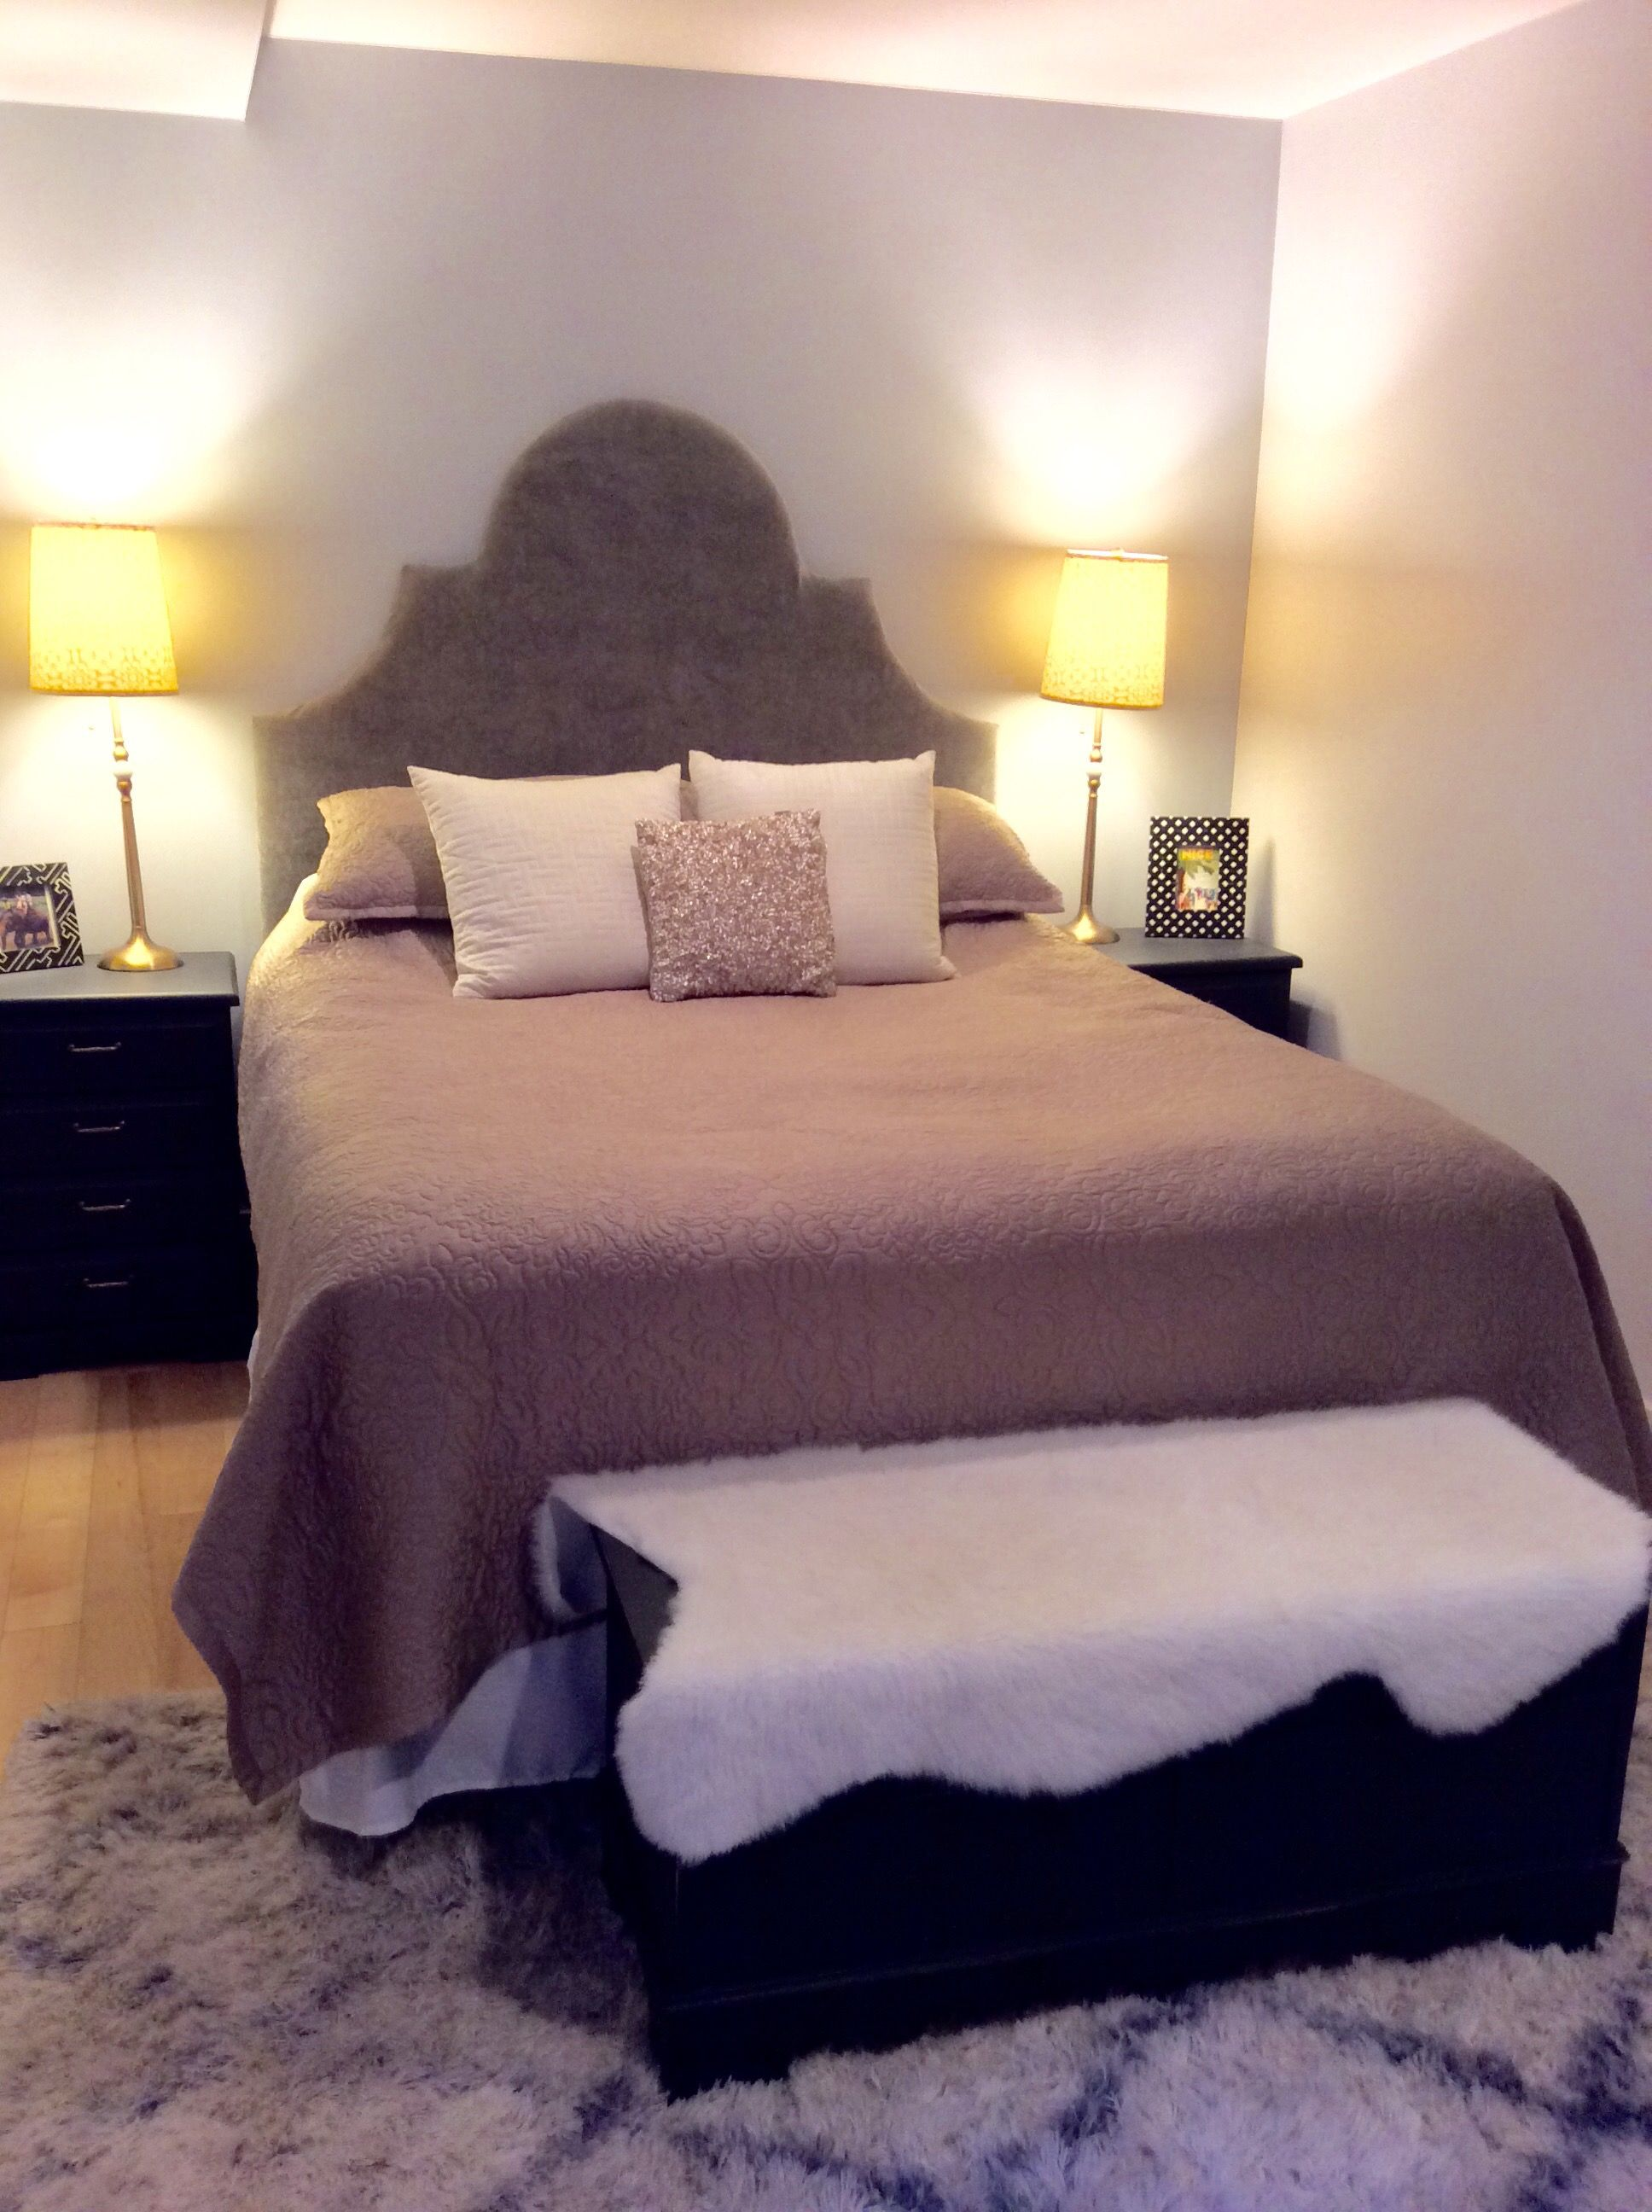 Easy bedroom update Bedroom, Home decor, Decor